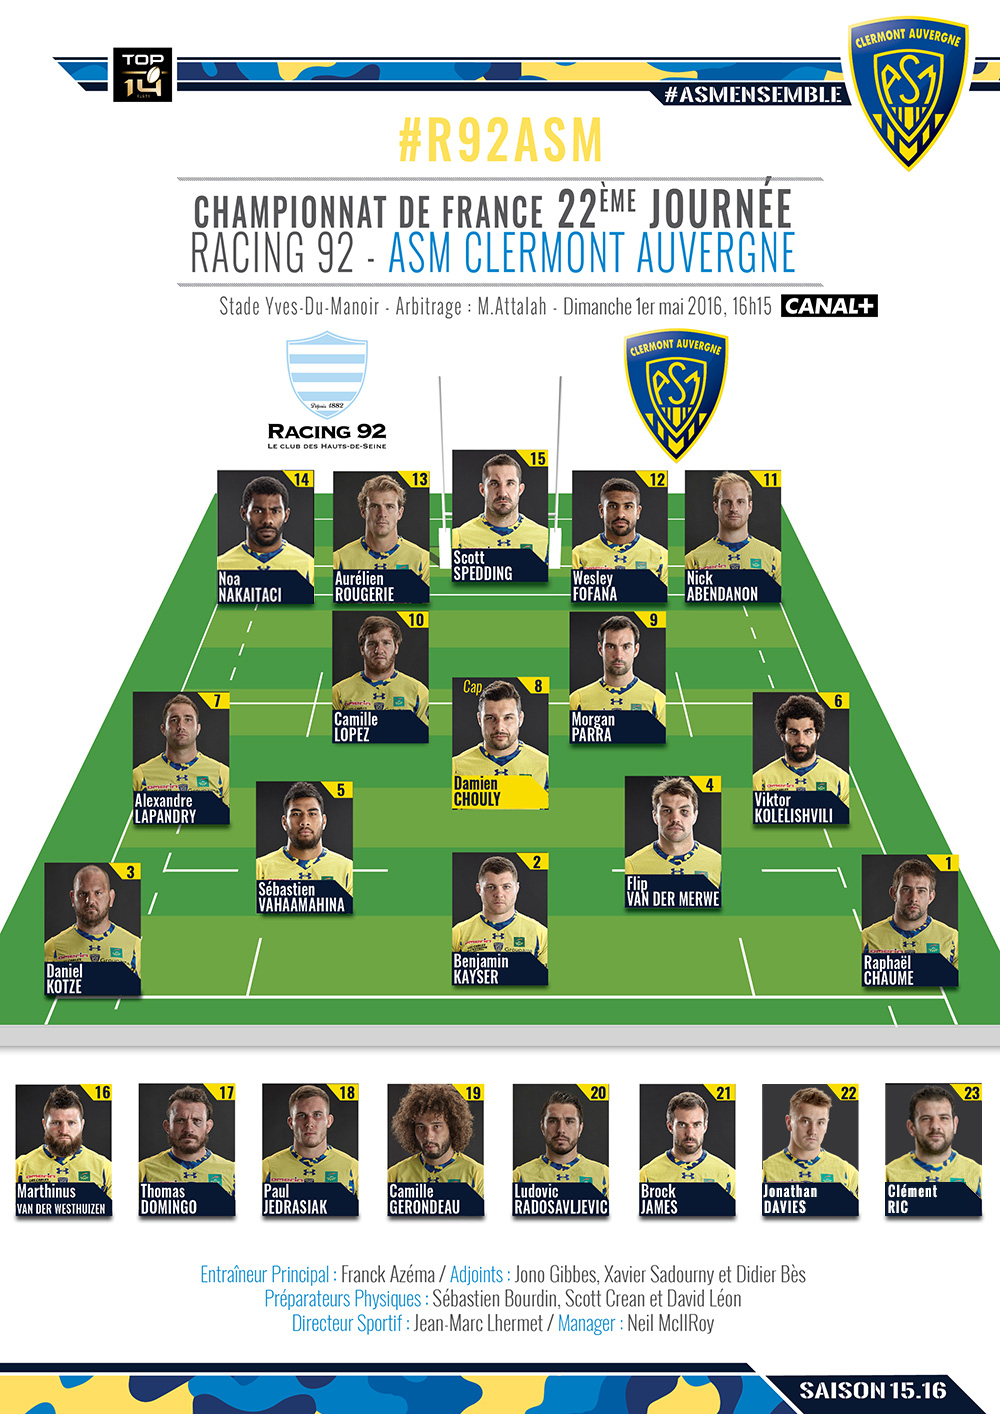 http://www.asm-rugby.com/sites/default/files/thumbnails/image/160429-compo-2.jpg